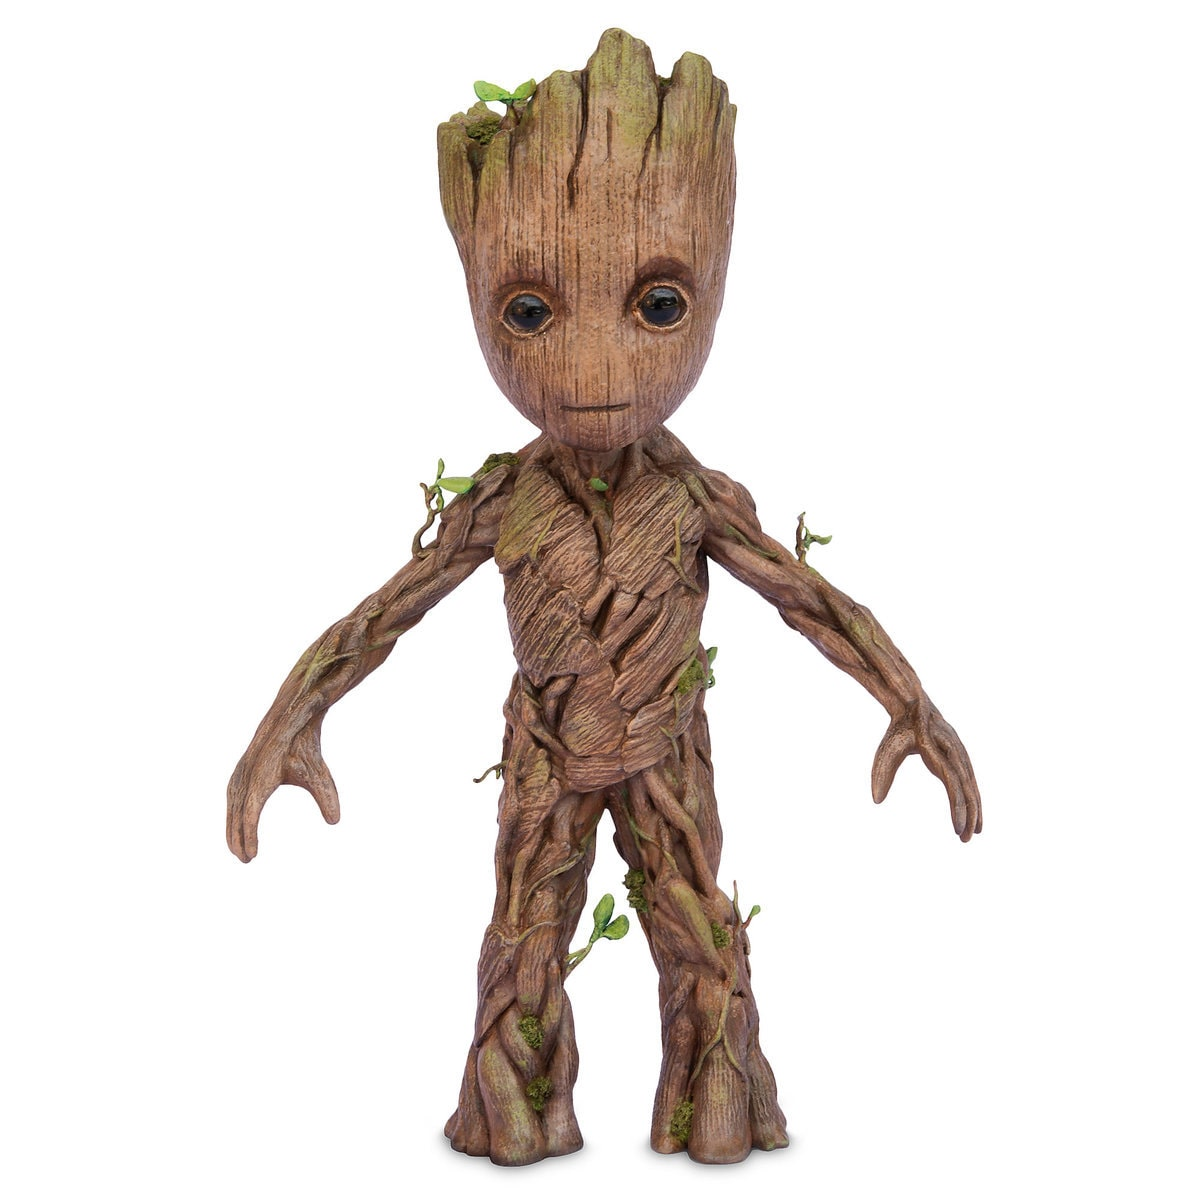 25a18b05543c3 Groot Puppet - Marvel Masterworks Collection Authentic Film Prop Duplicate  - Limited Edition